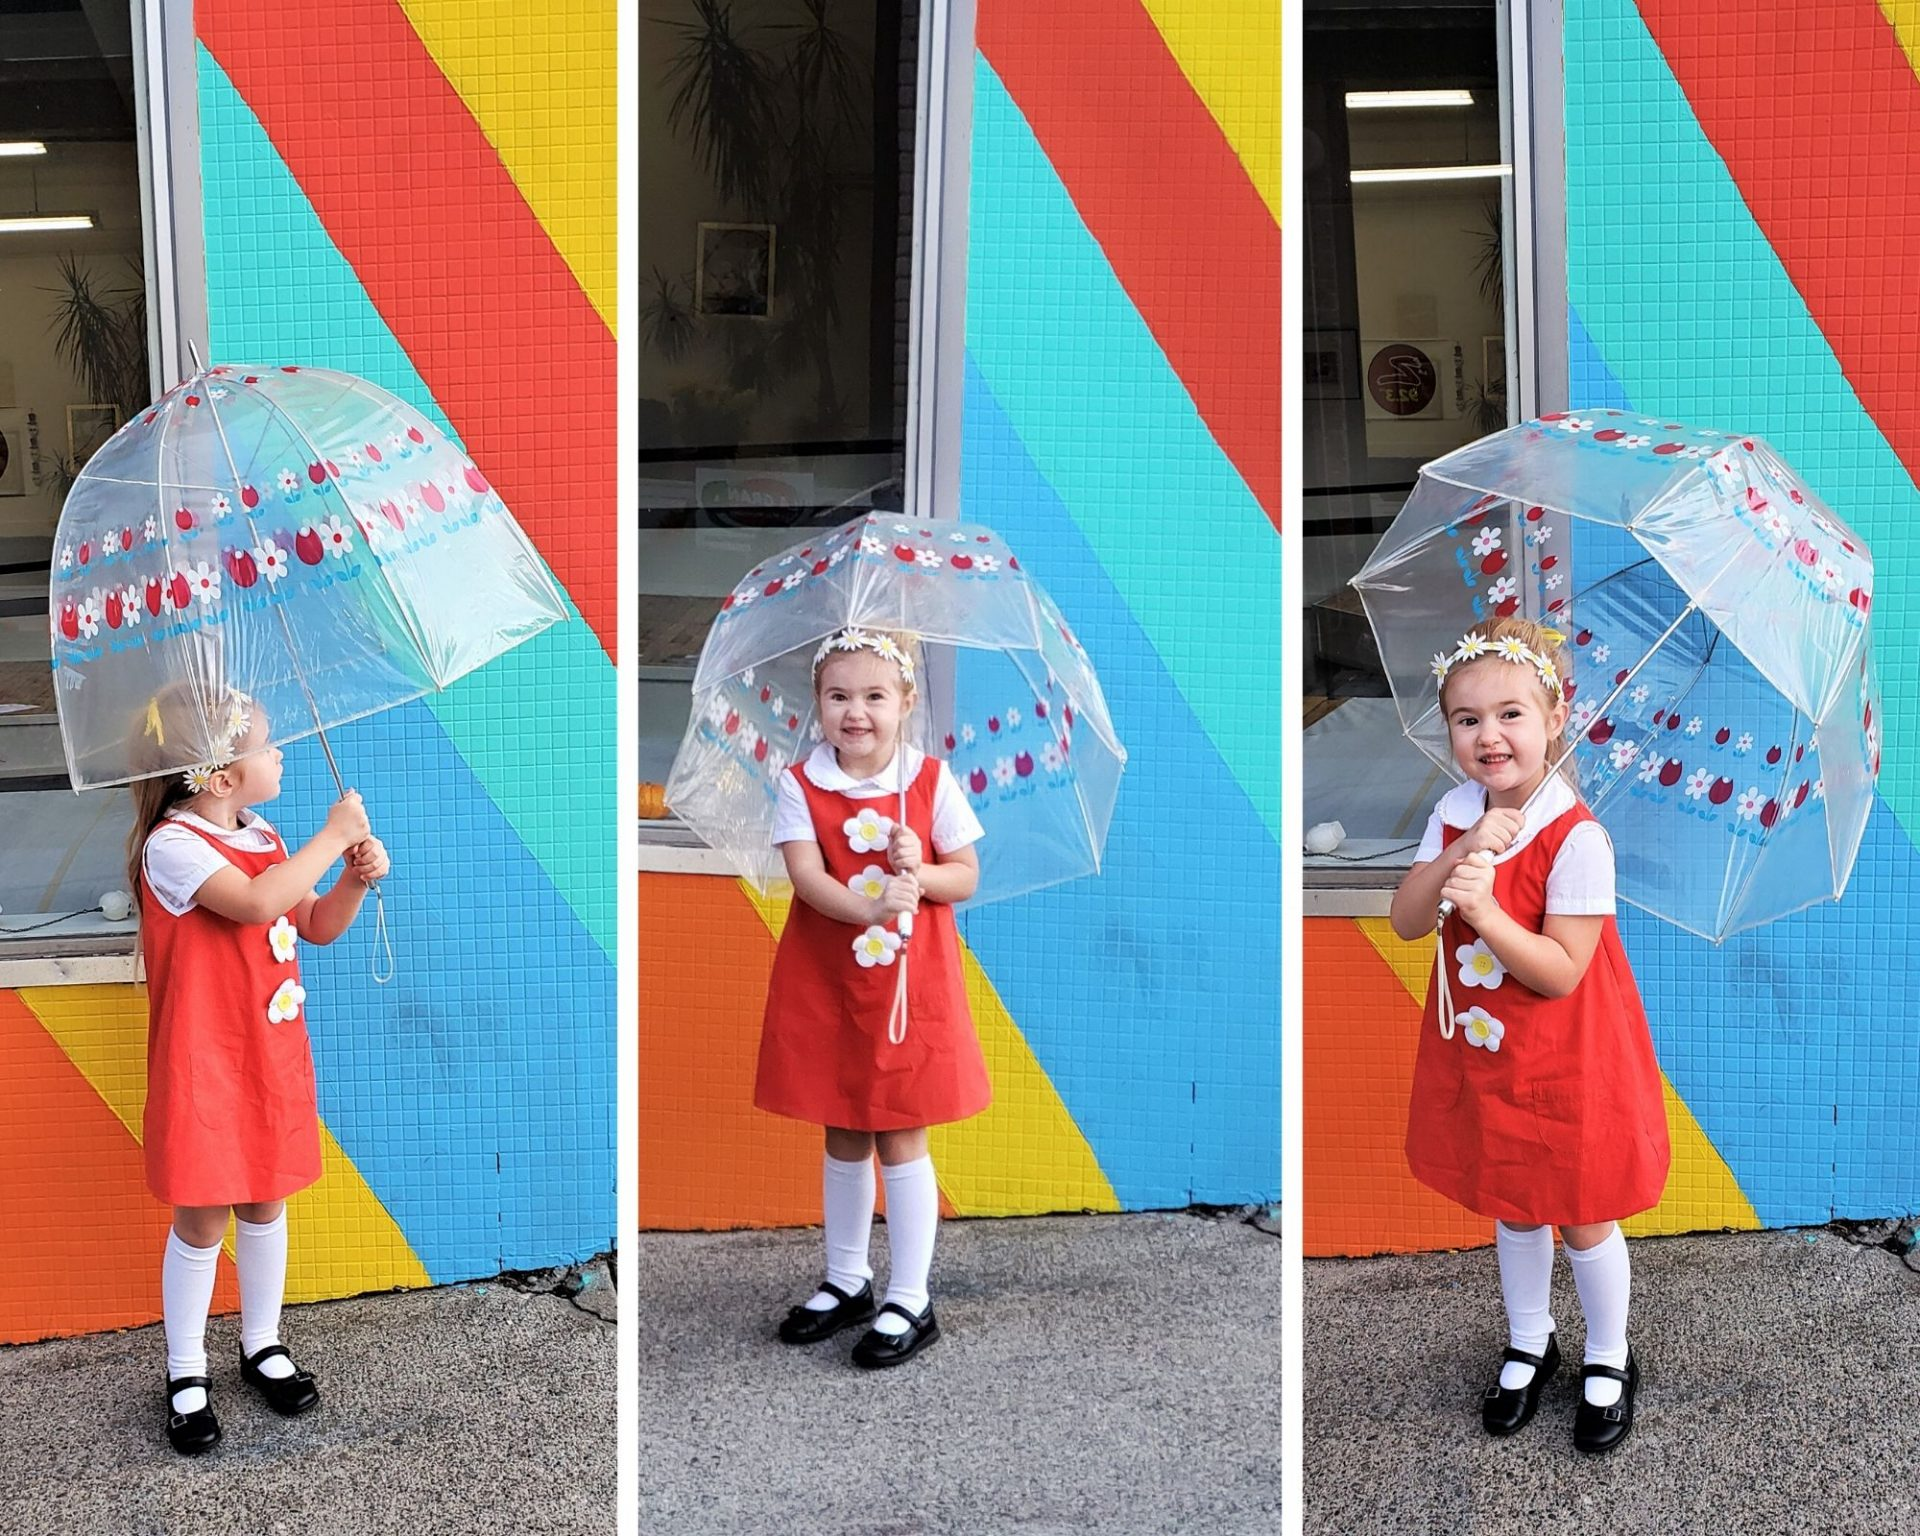 Eliza Collage - Umbrella